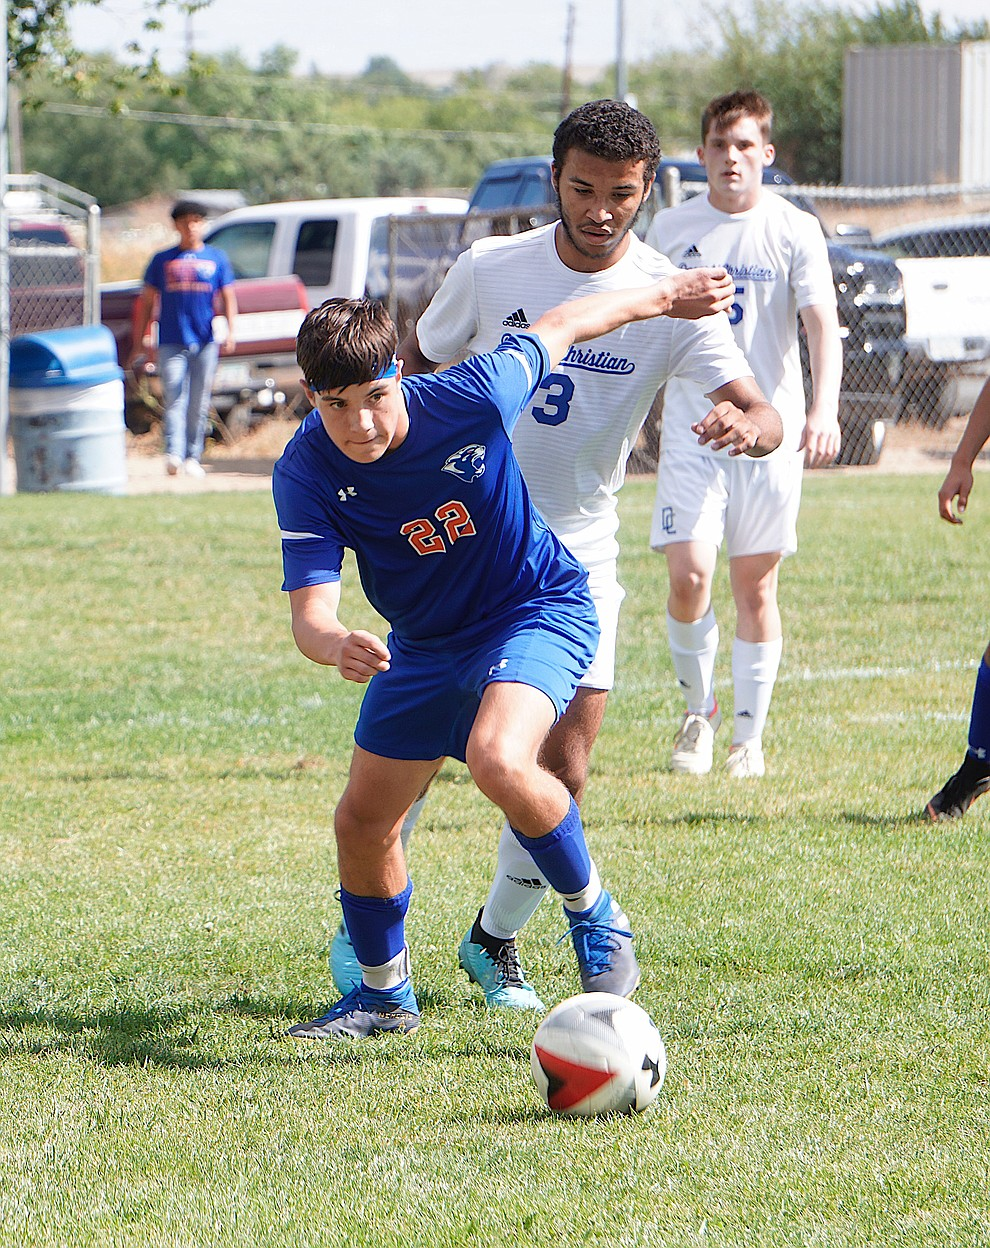 Chino Valley defender Ravi Holladay (22) gets past his defender during the team's 8-2 win over Desert Christian on Saturday, Sept. 28, 2019, at Chino Valley High School. (Aaron Valdez/Courier)